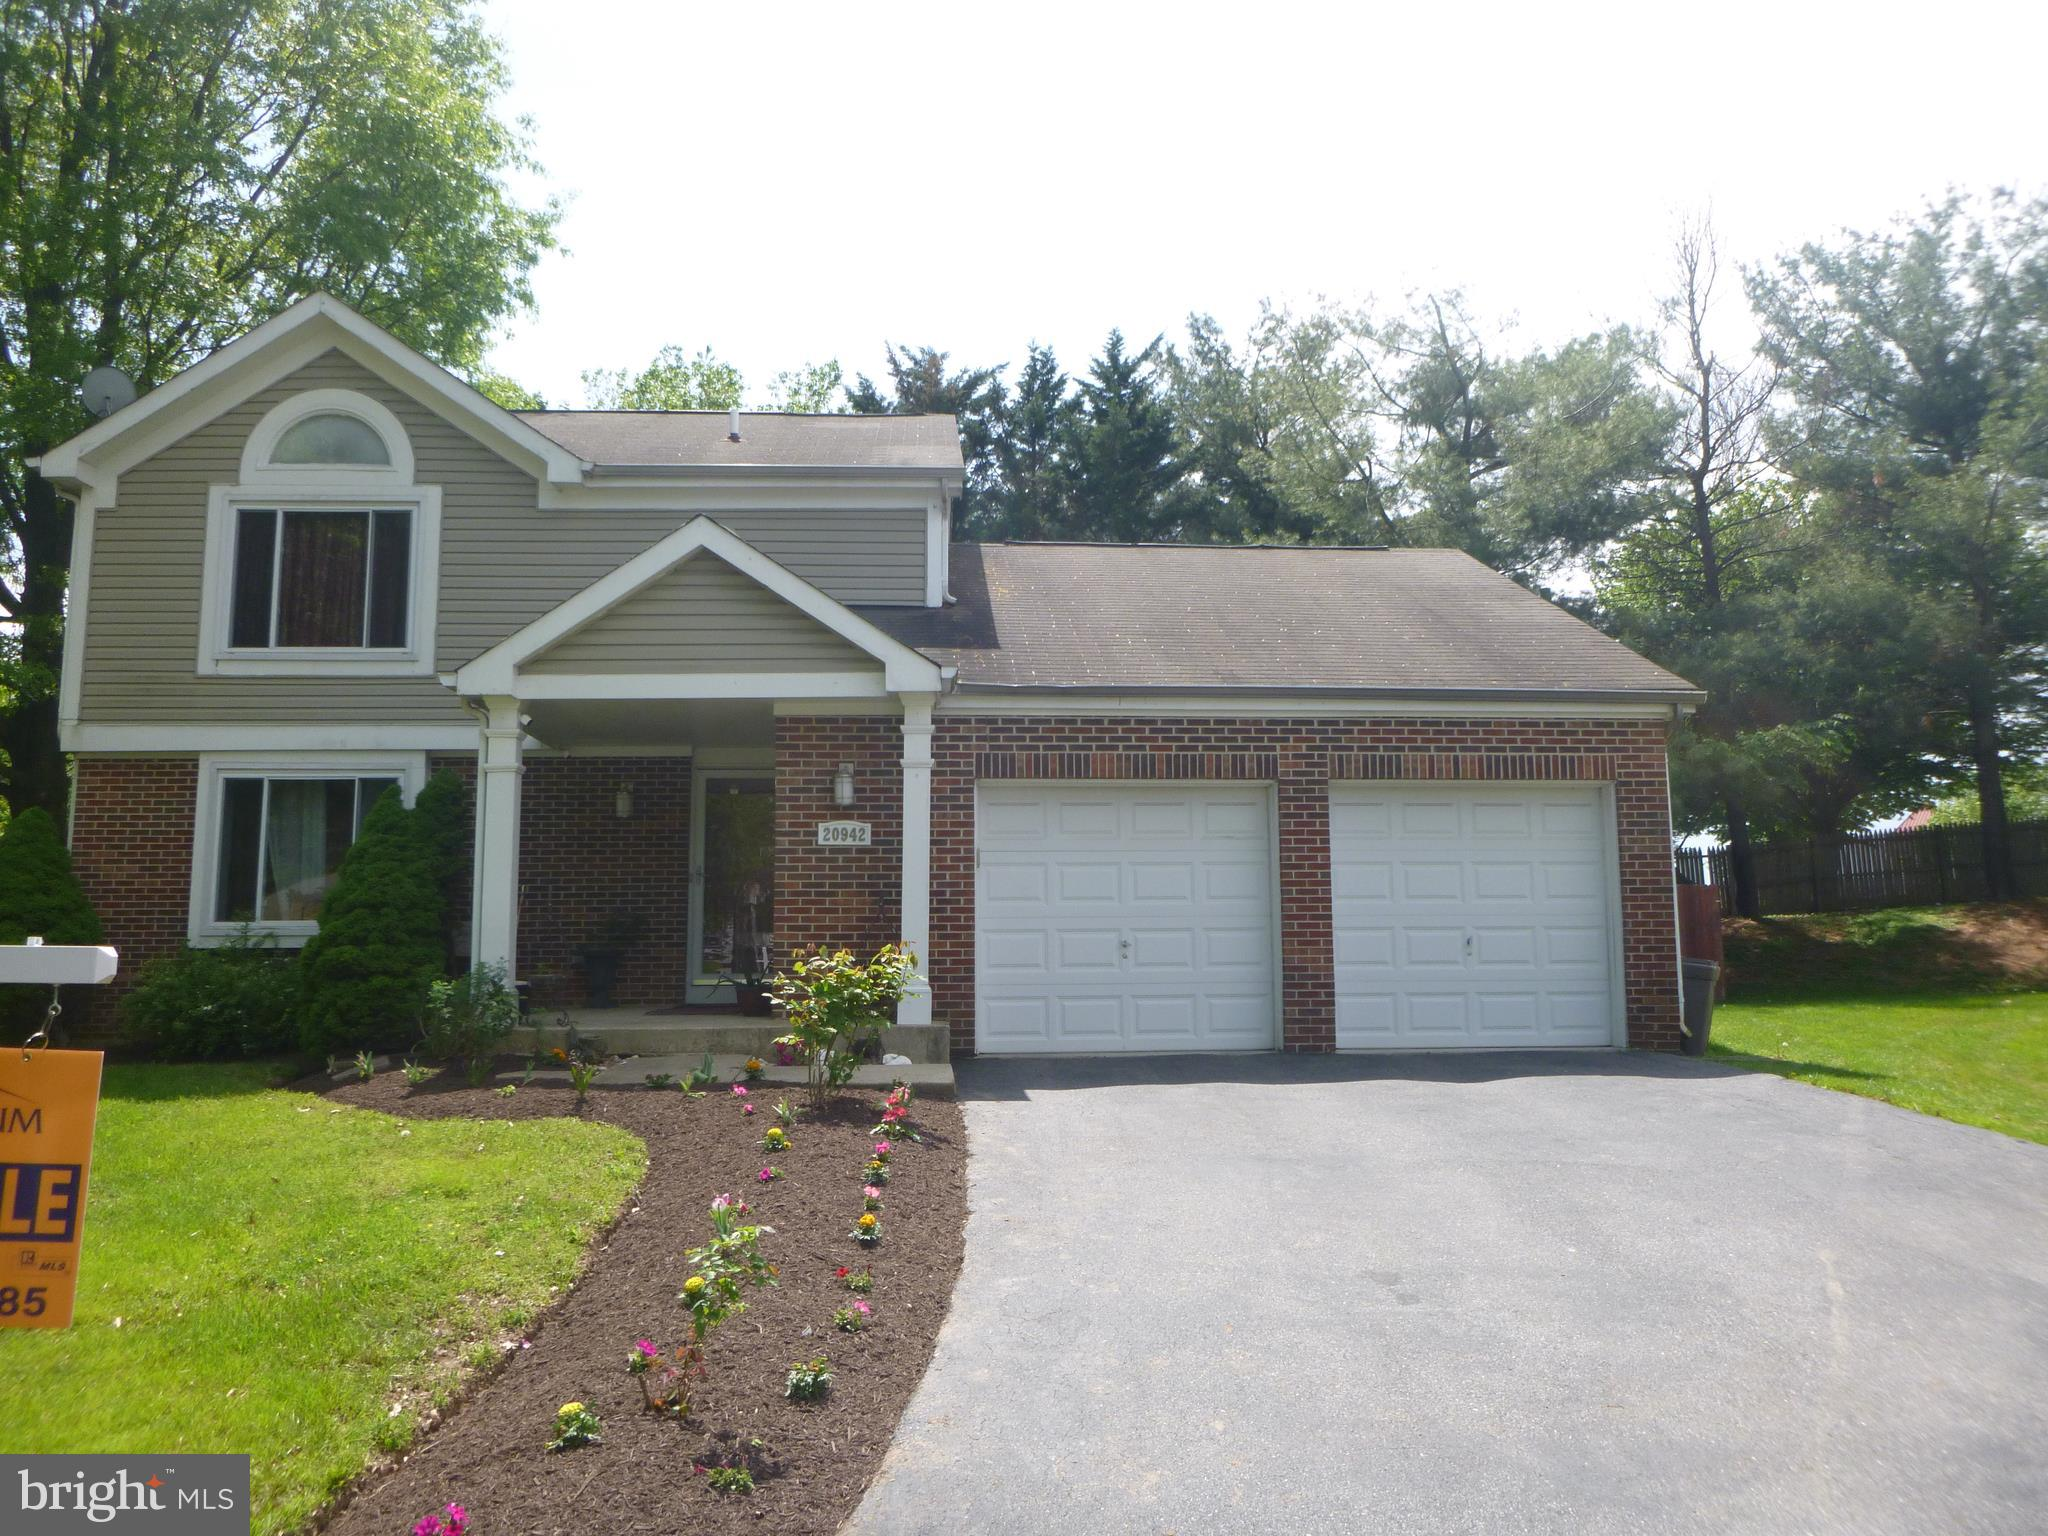 2 GARAGE,UPDATED KITCHEN ,UPDATED BATHS,CROWN MOLDING DINING ROOM AND LIVING ROOM CEILING.